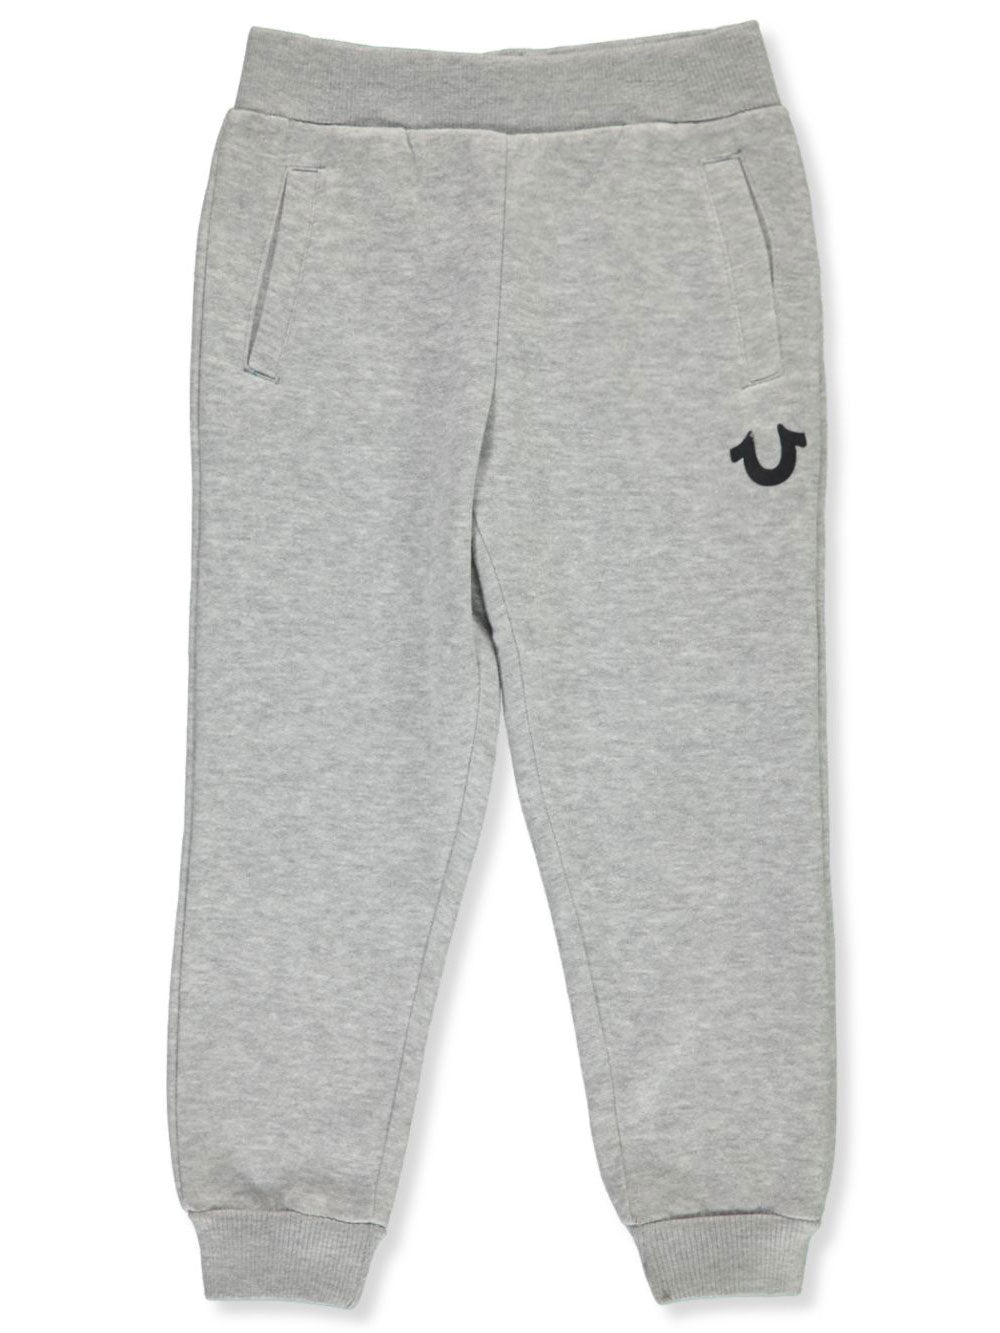 True Religion 2pc Jogger Set - FLY GUYZ